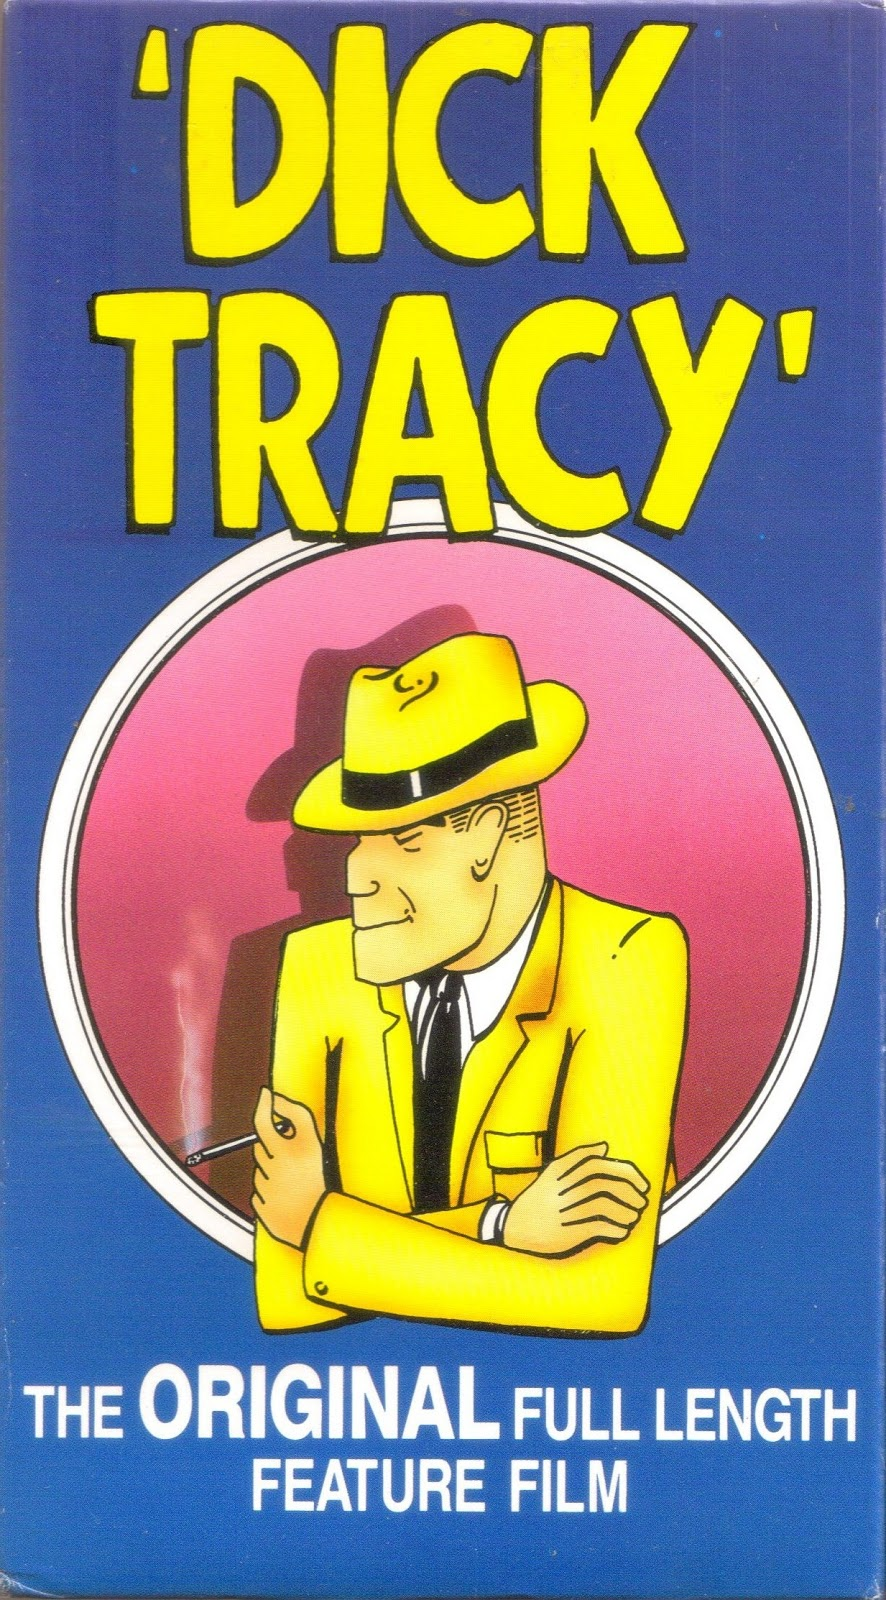 Calling Dick Tracy 38